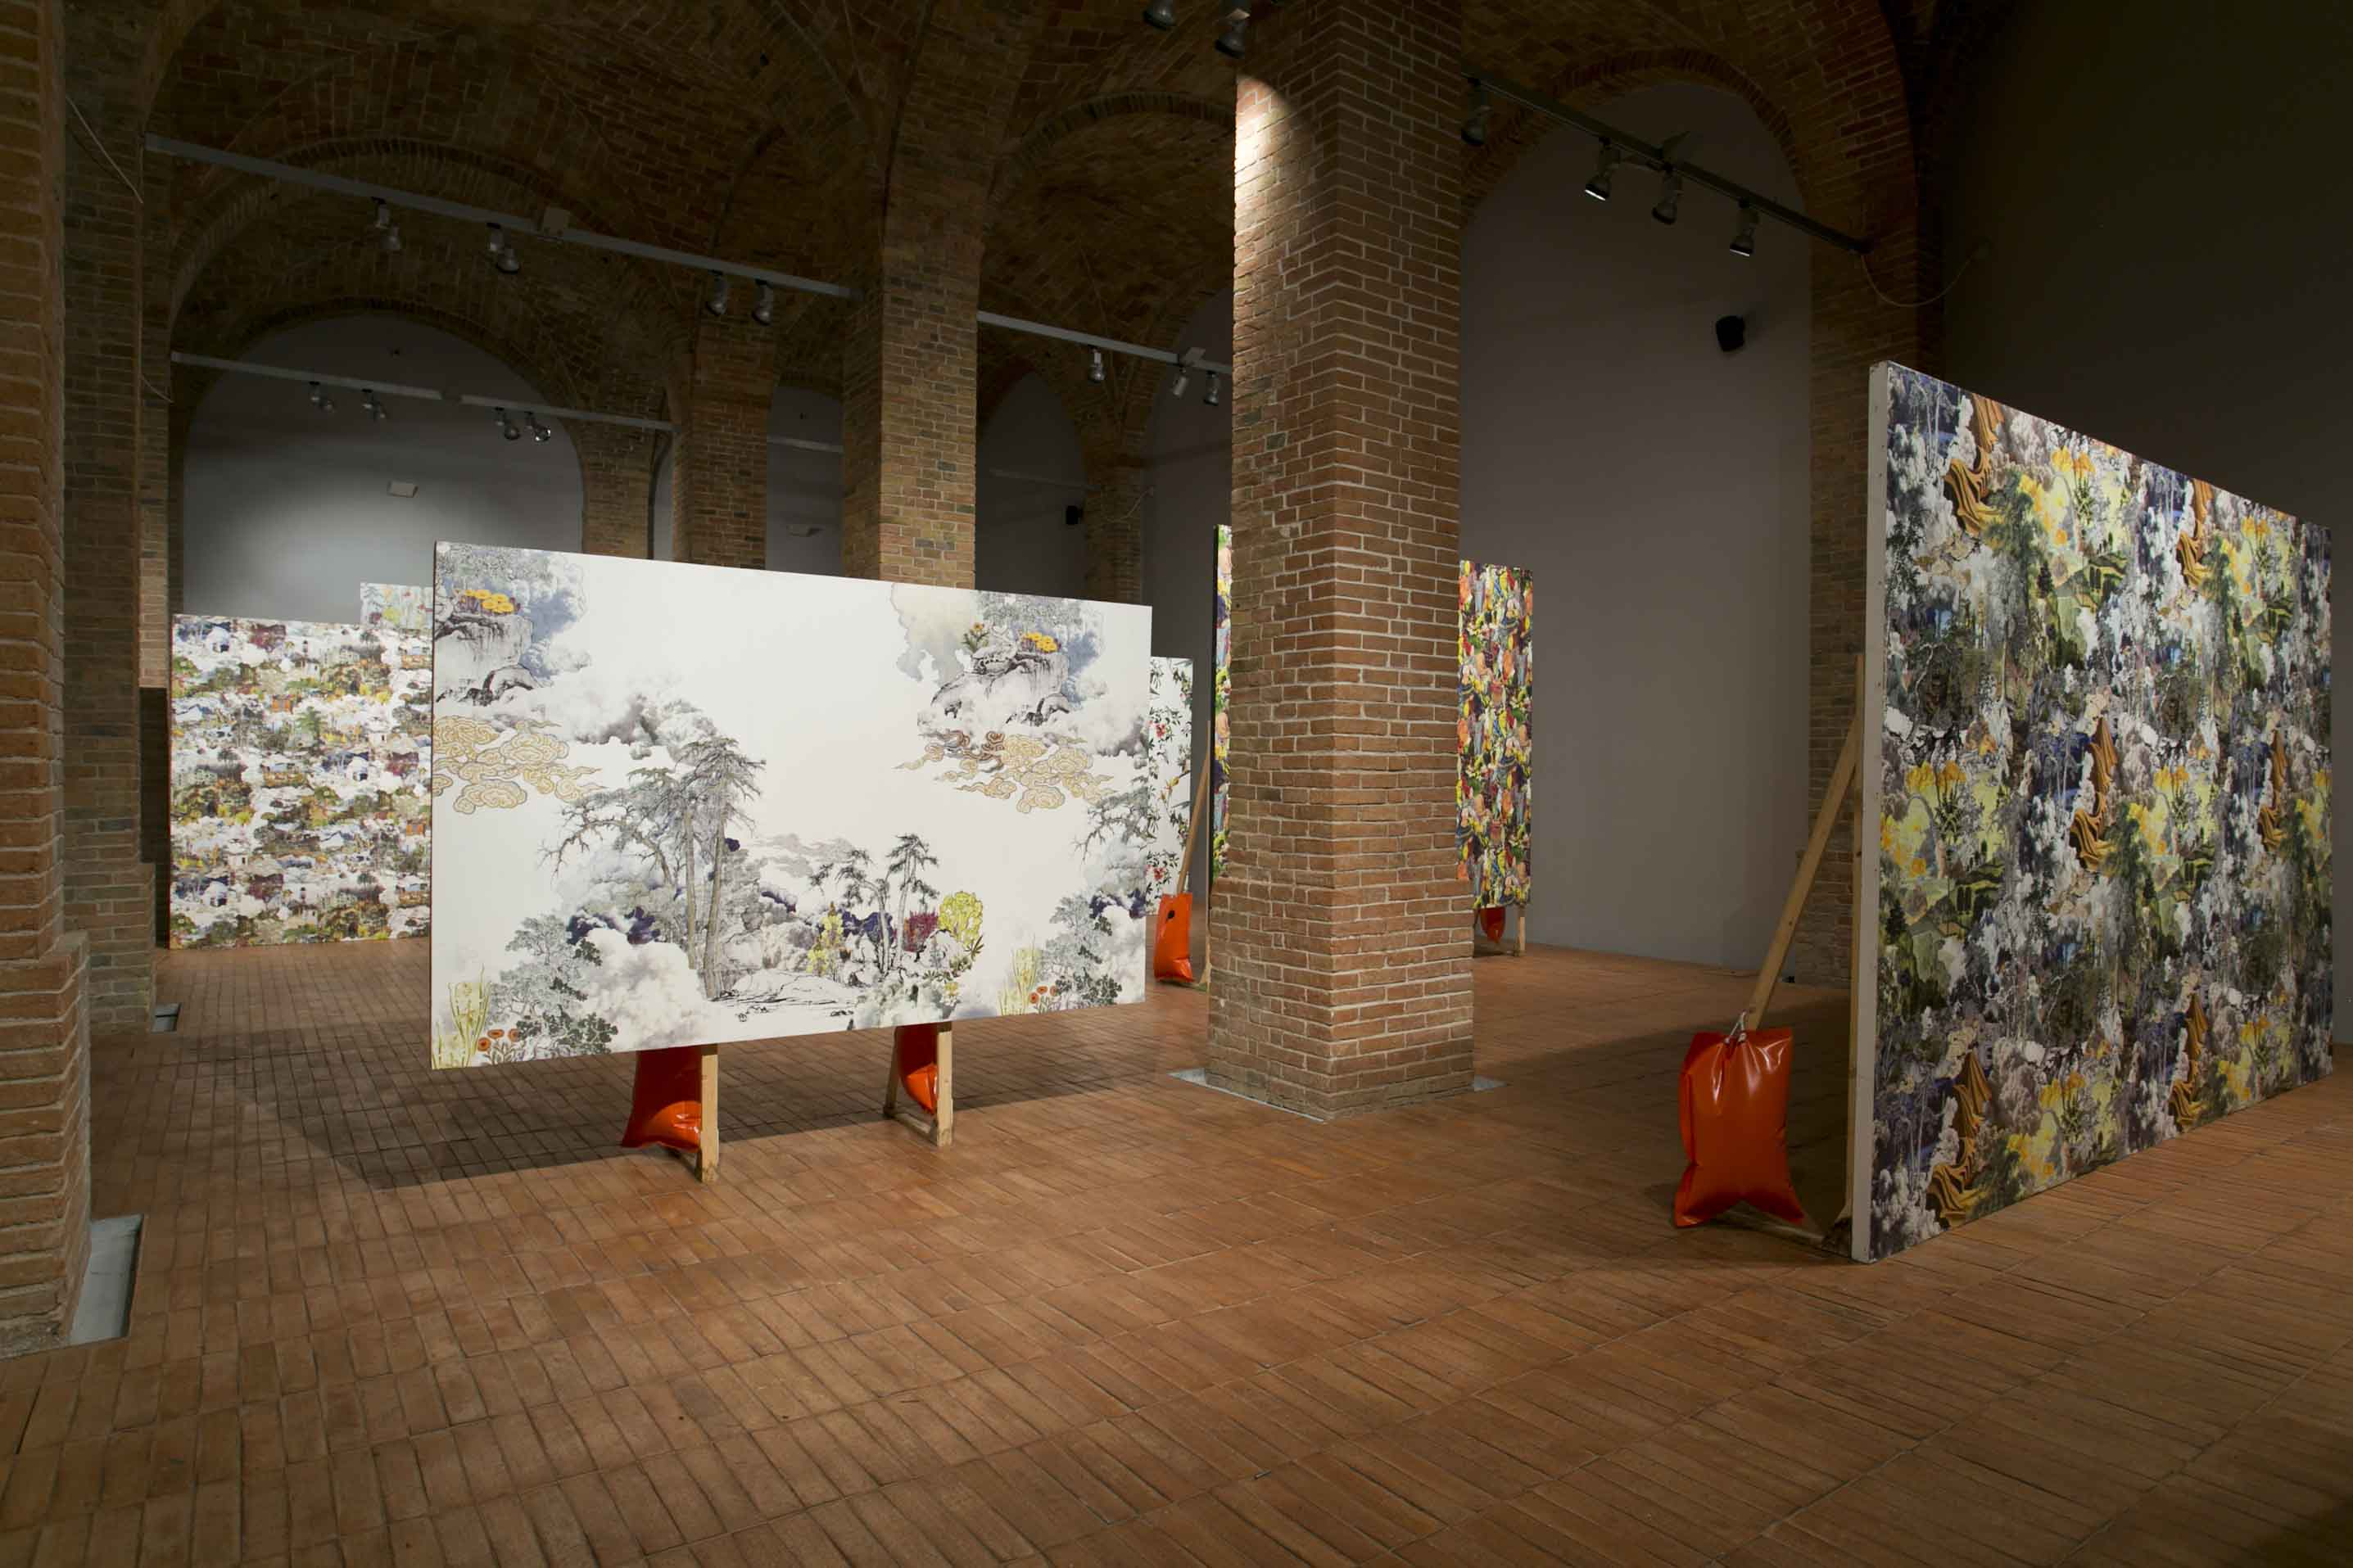 Francesco Simeti, Wallpaper patterns, 2007-2012, photo Giuseppe Veniero